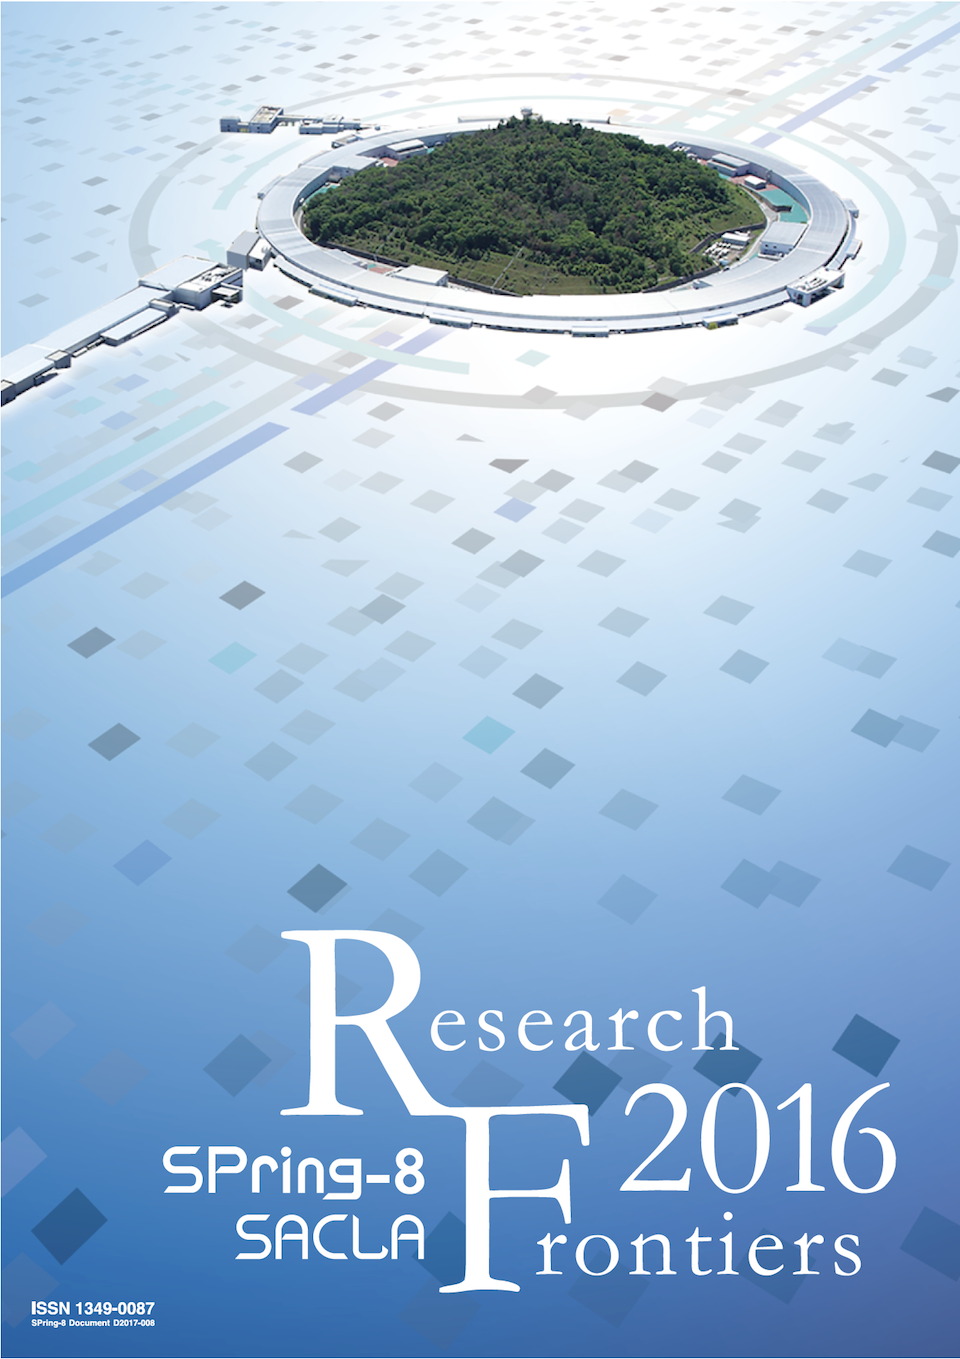 SPring-8 Research Frontiers